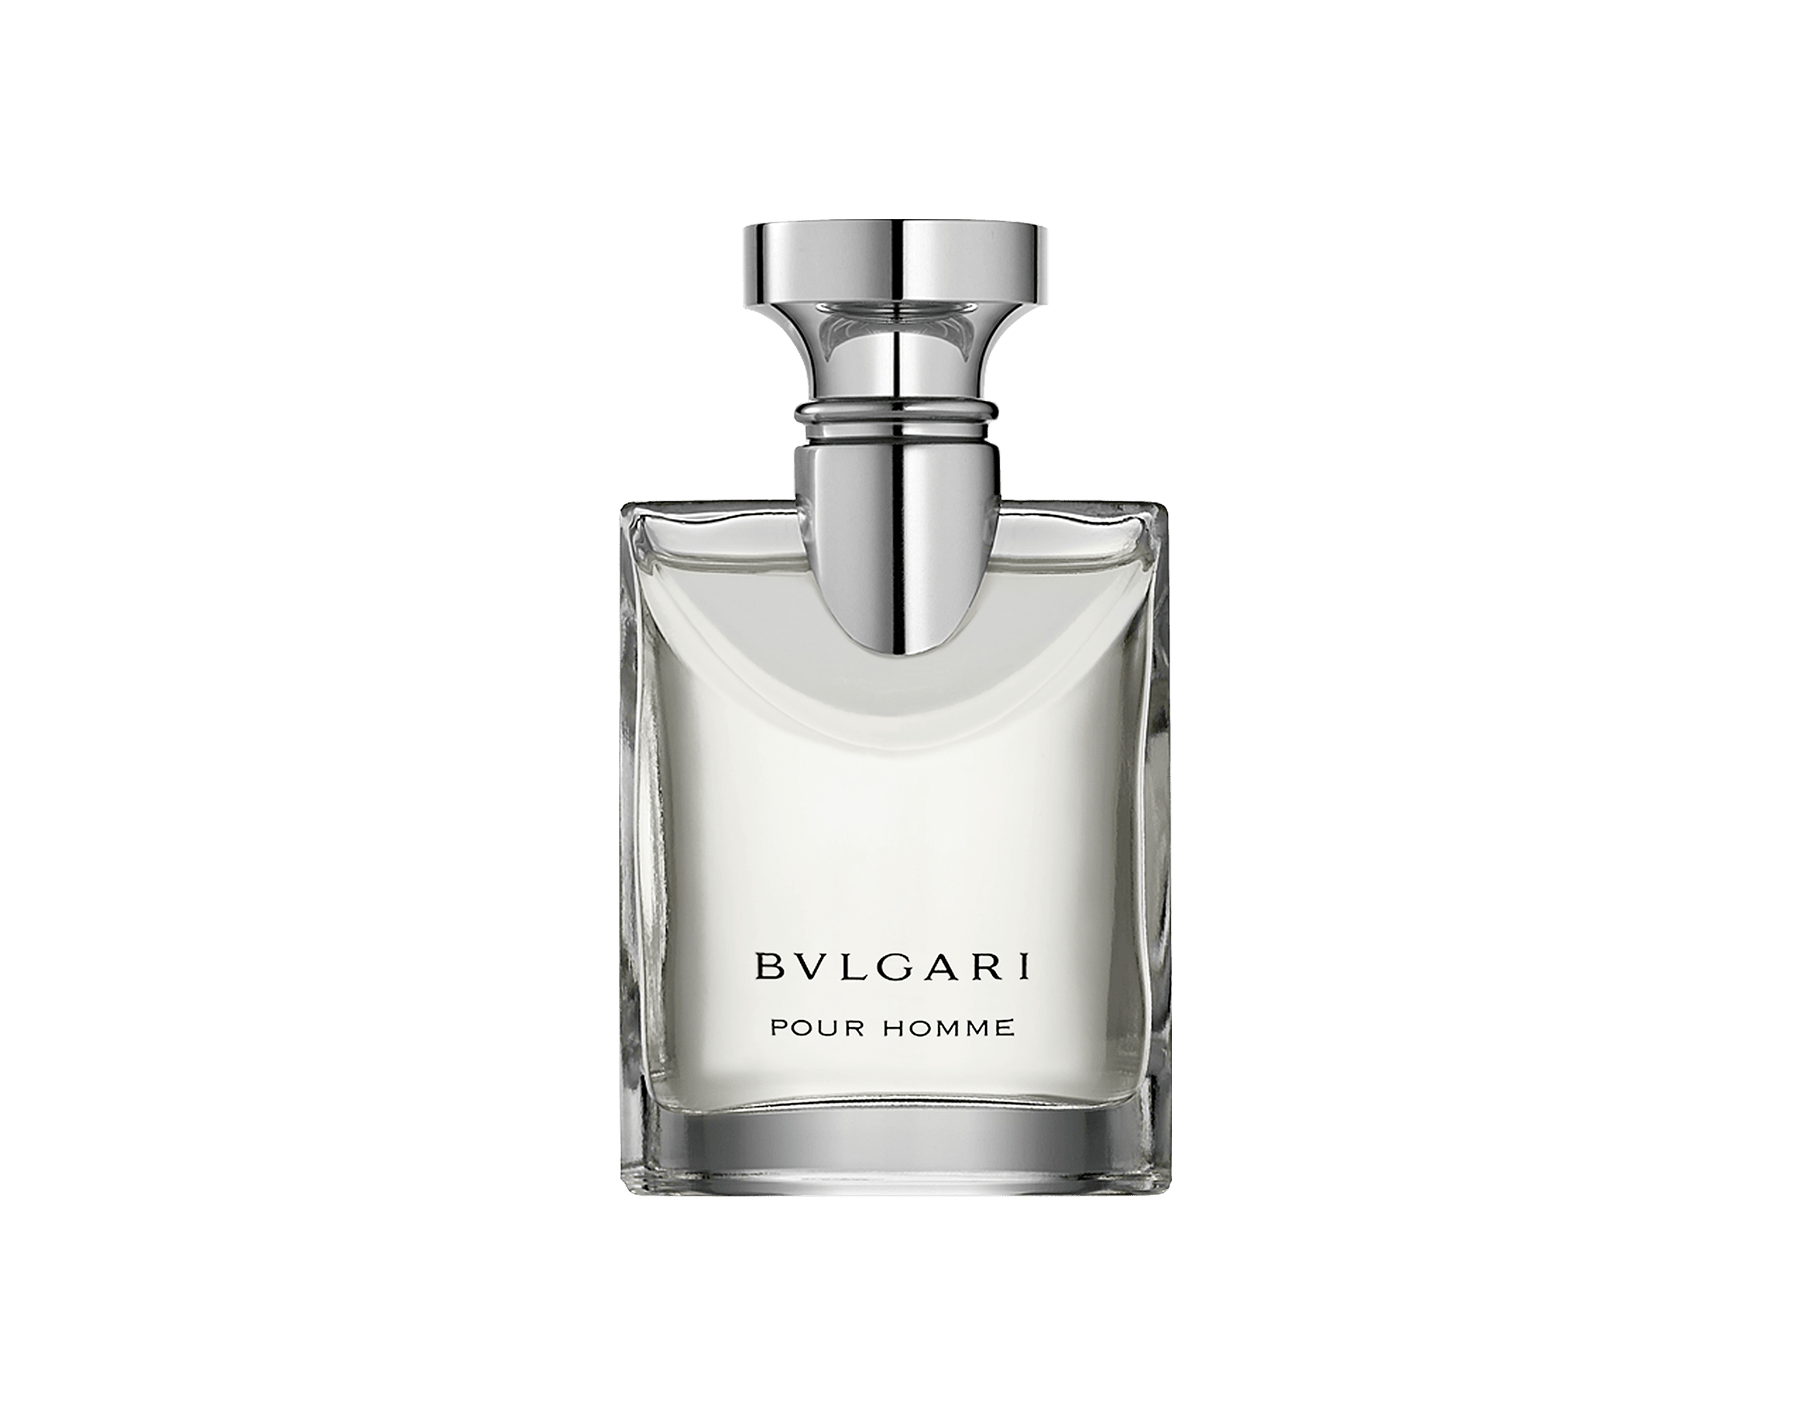 A contemporary and classic fragrance for men 83110 image 1